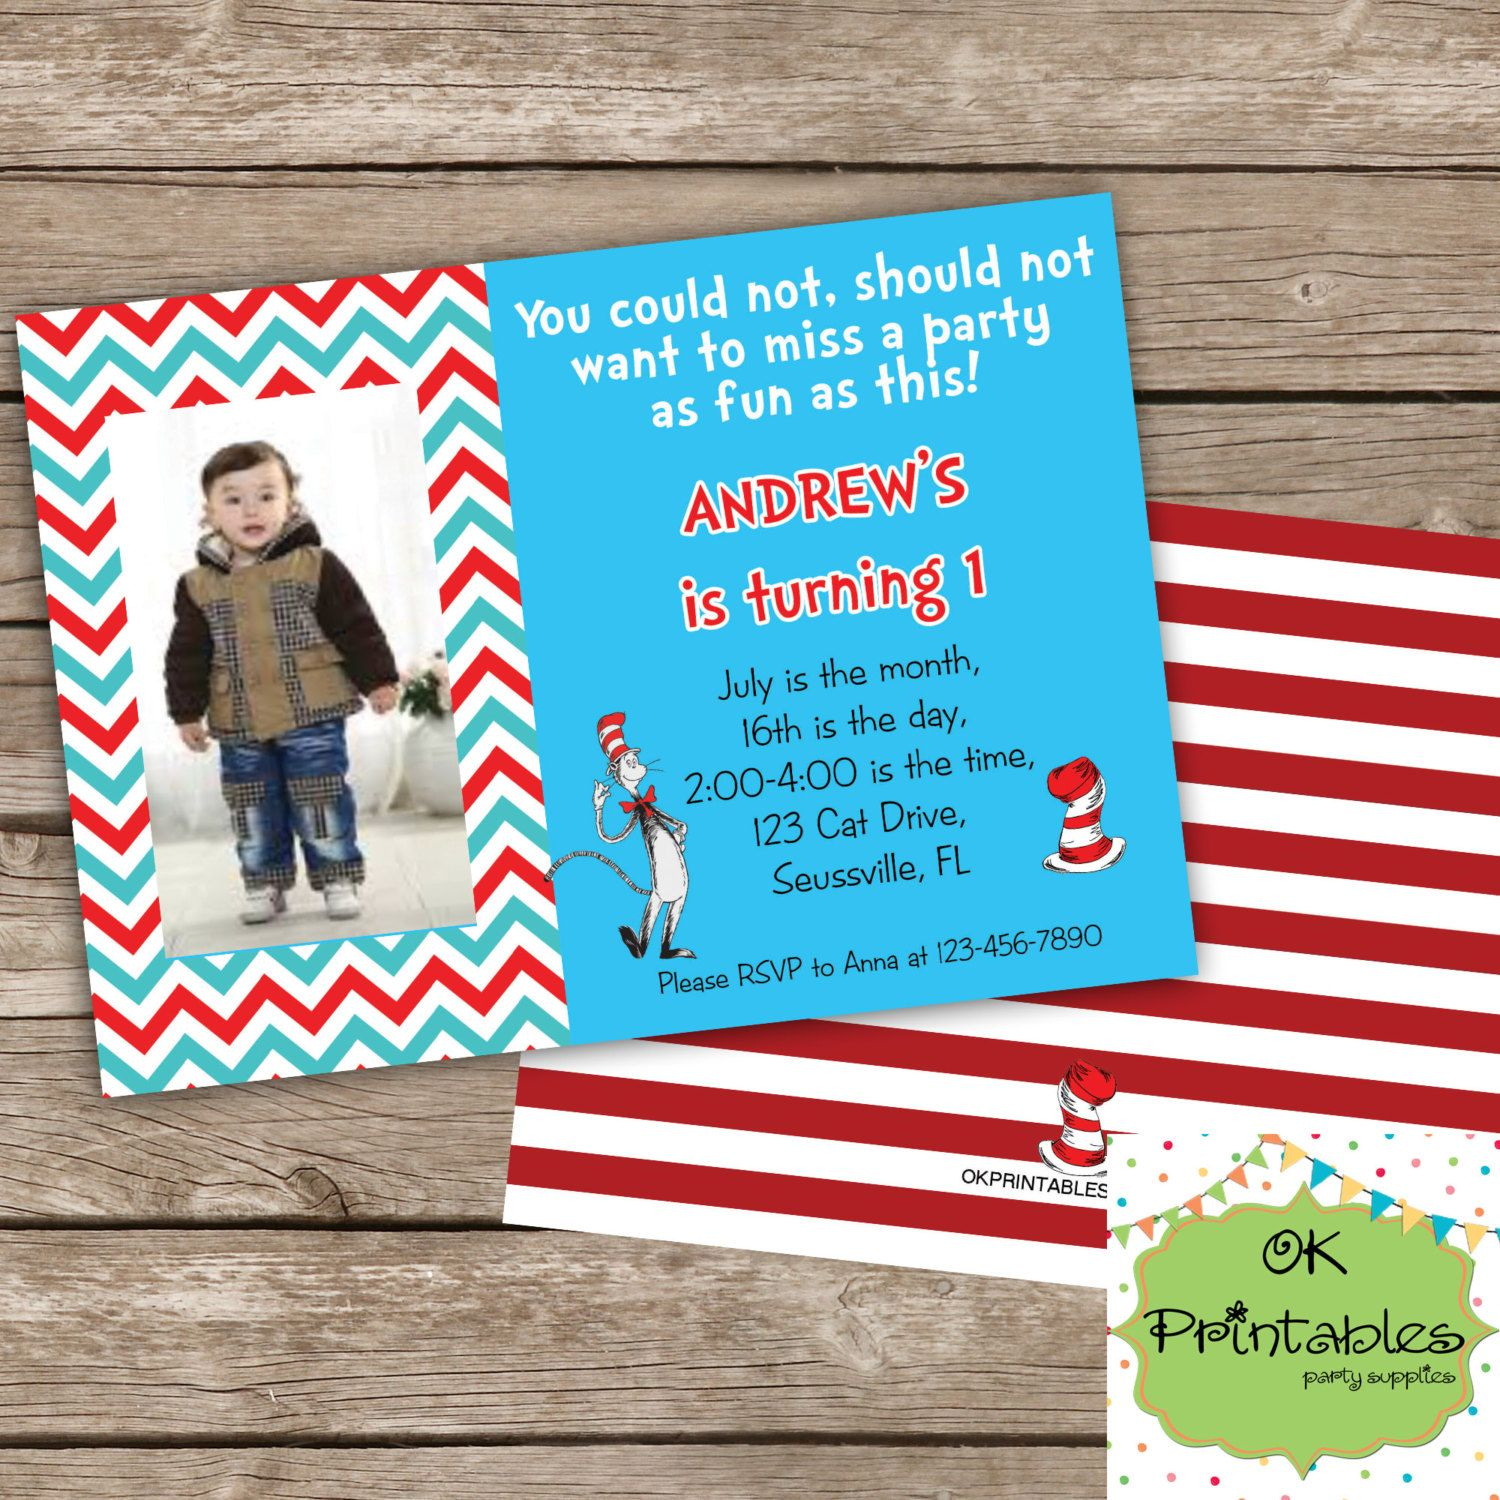 Seuss inspired party invitation- Dr Seuss Party Invite- Cat in the ...